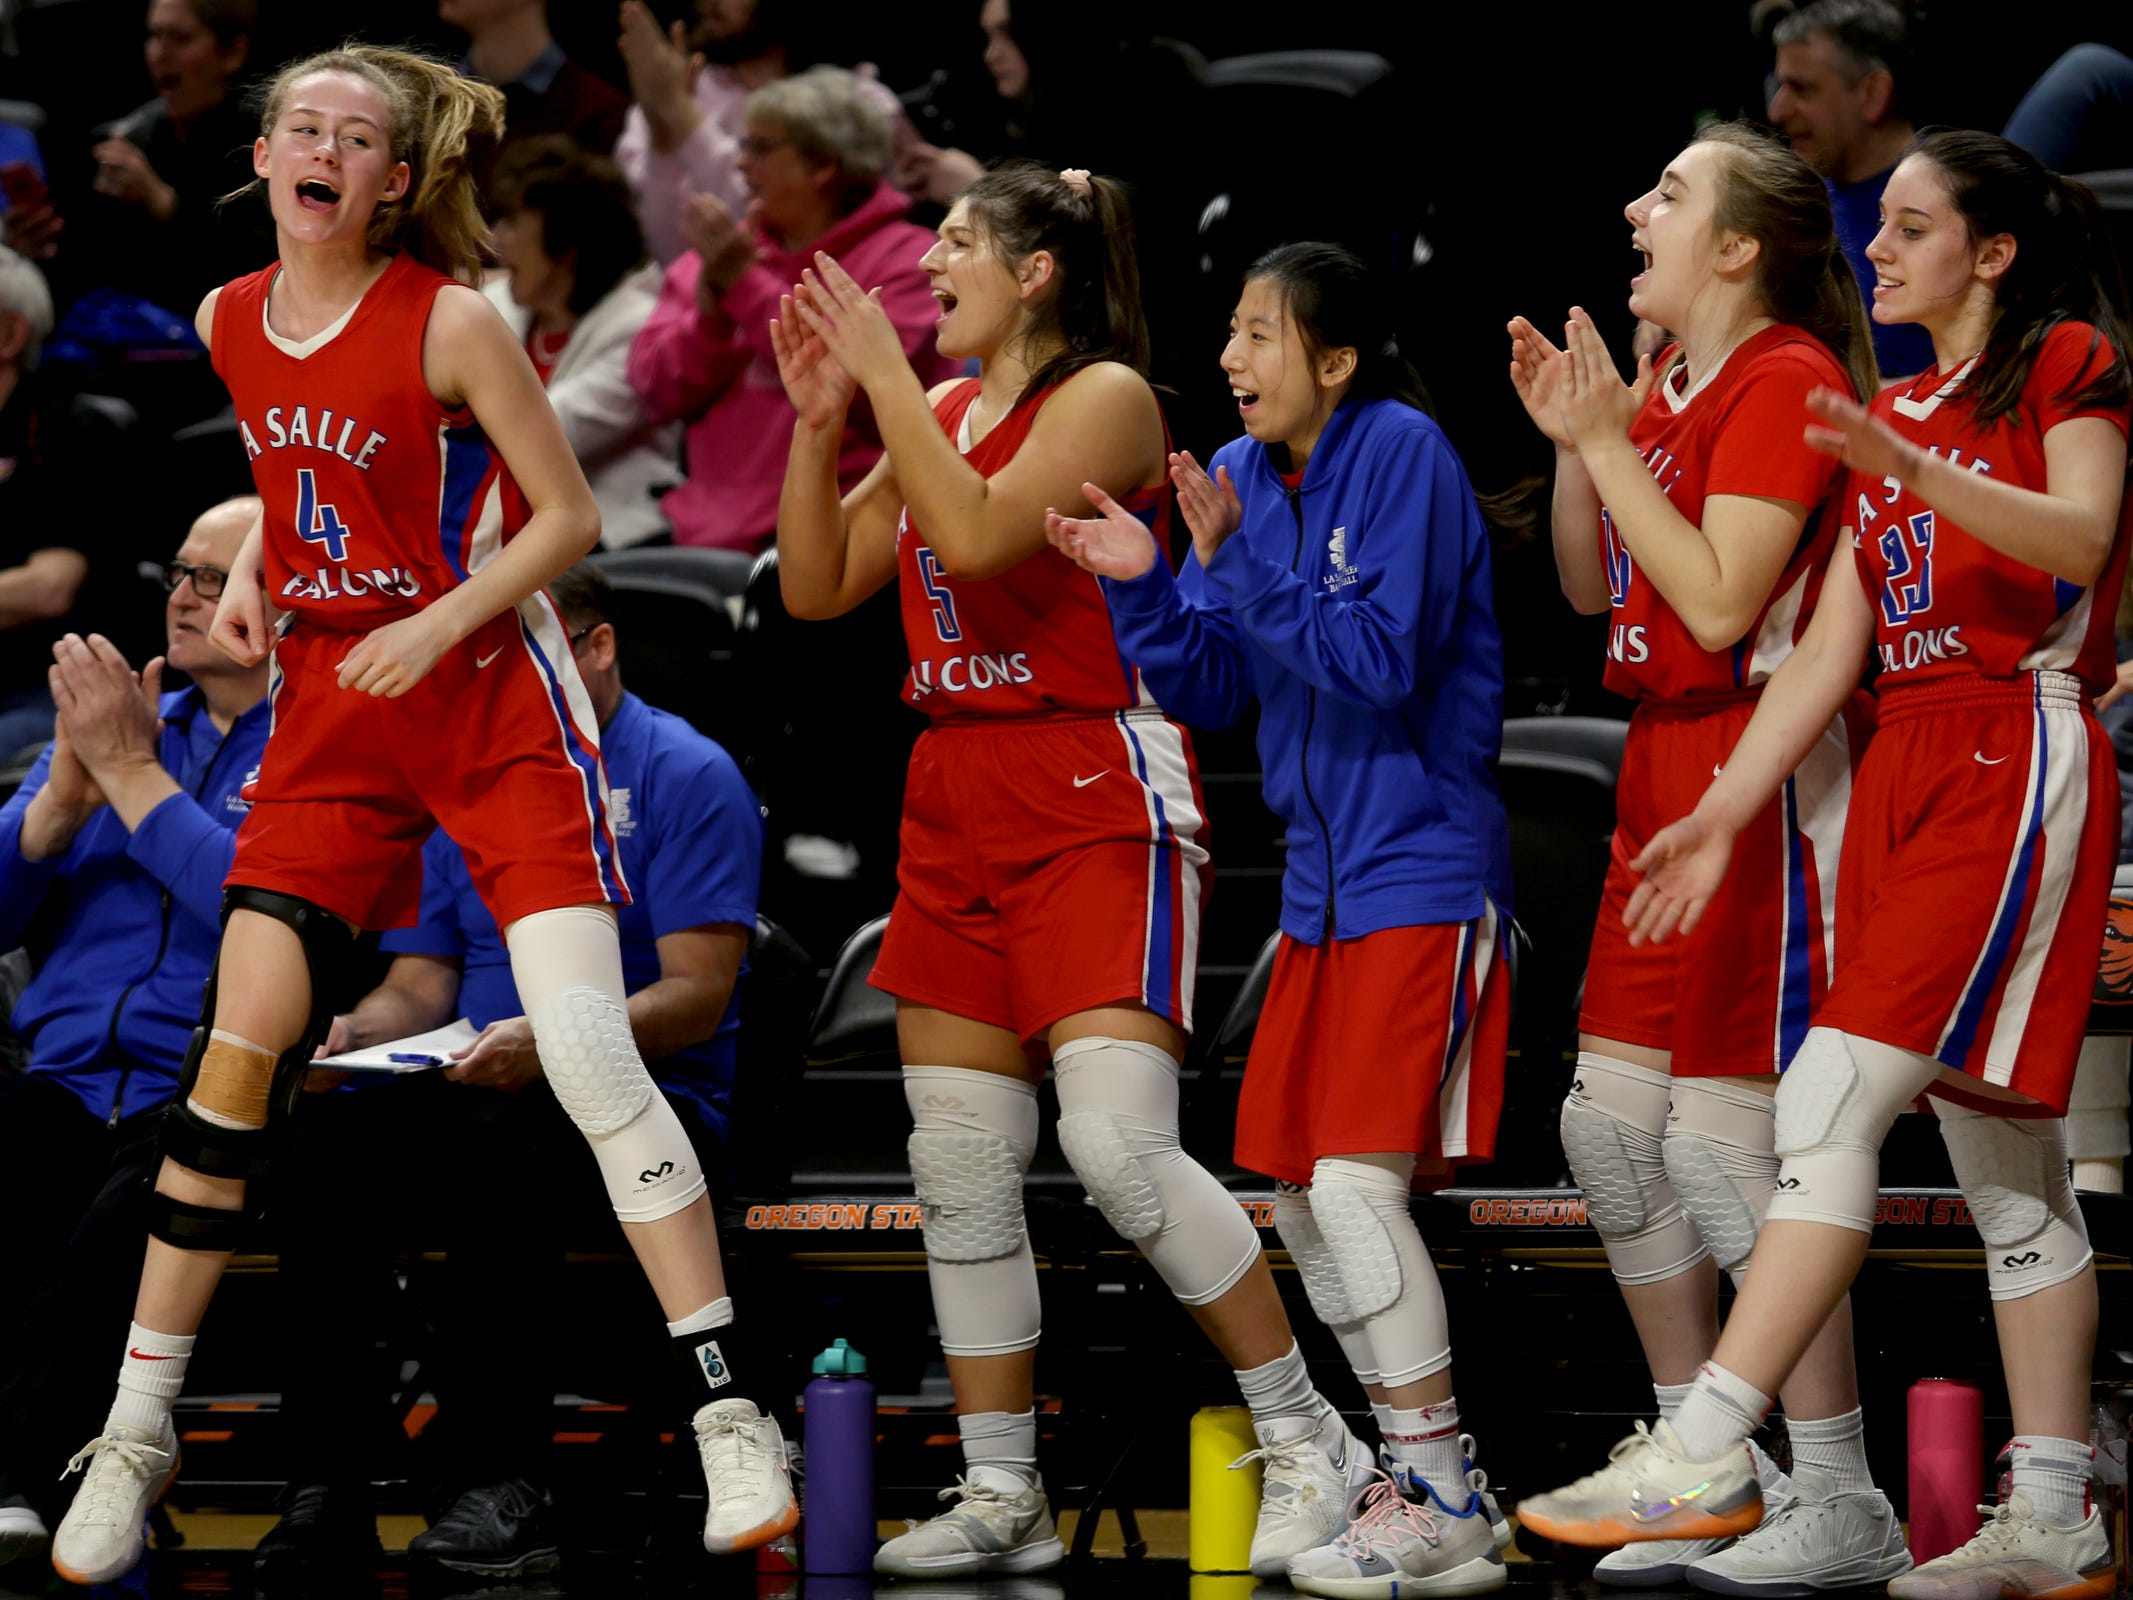 The La Salle Prep bench celebrates a play in the first half of the La Salle Prep vs. Silverton girls basketball game in the OSAA Class 5A quarterfinals at Oregon State University in Corvallis on Thursday, March 7, 2019. La Salle Prep won the game 57-46.